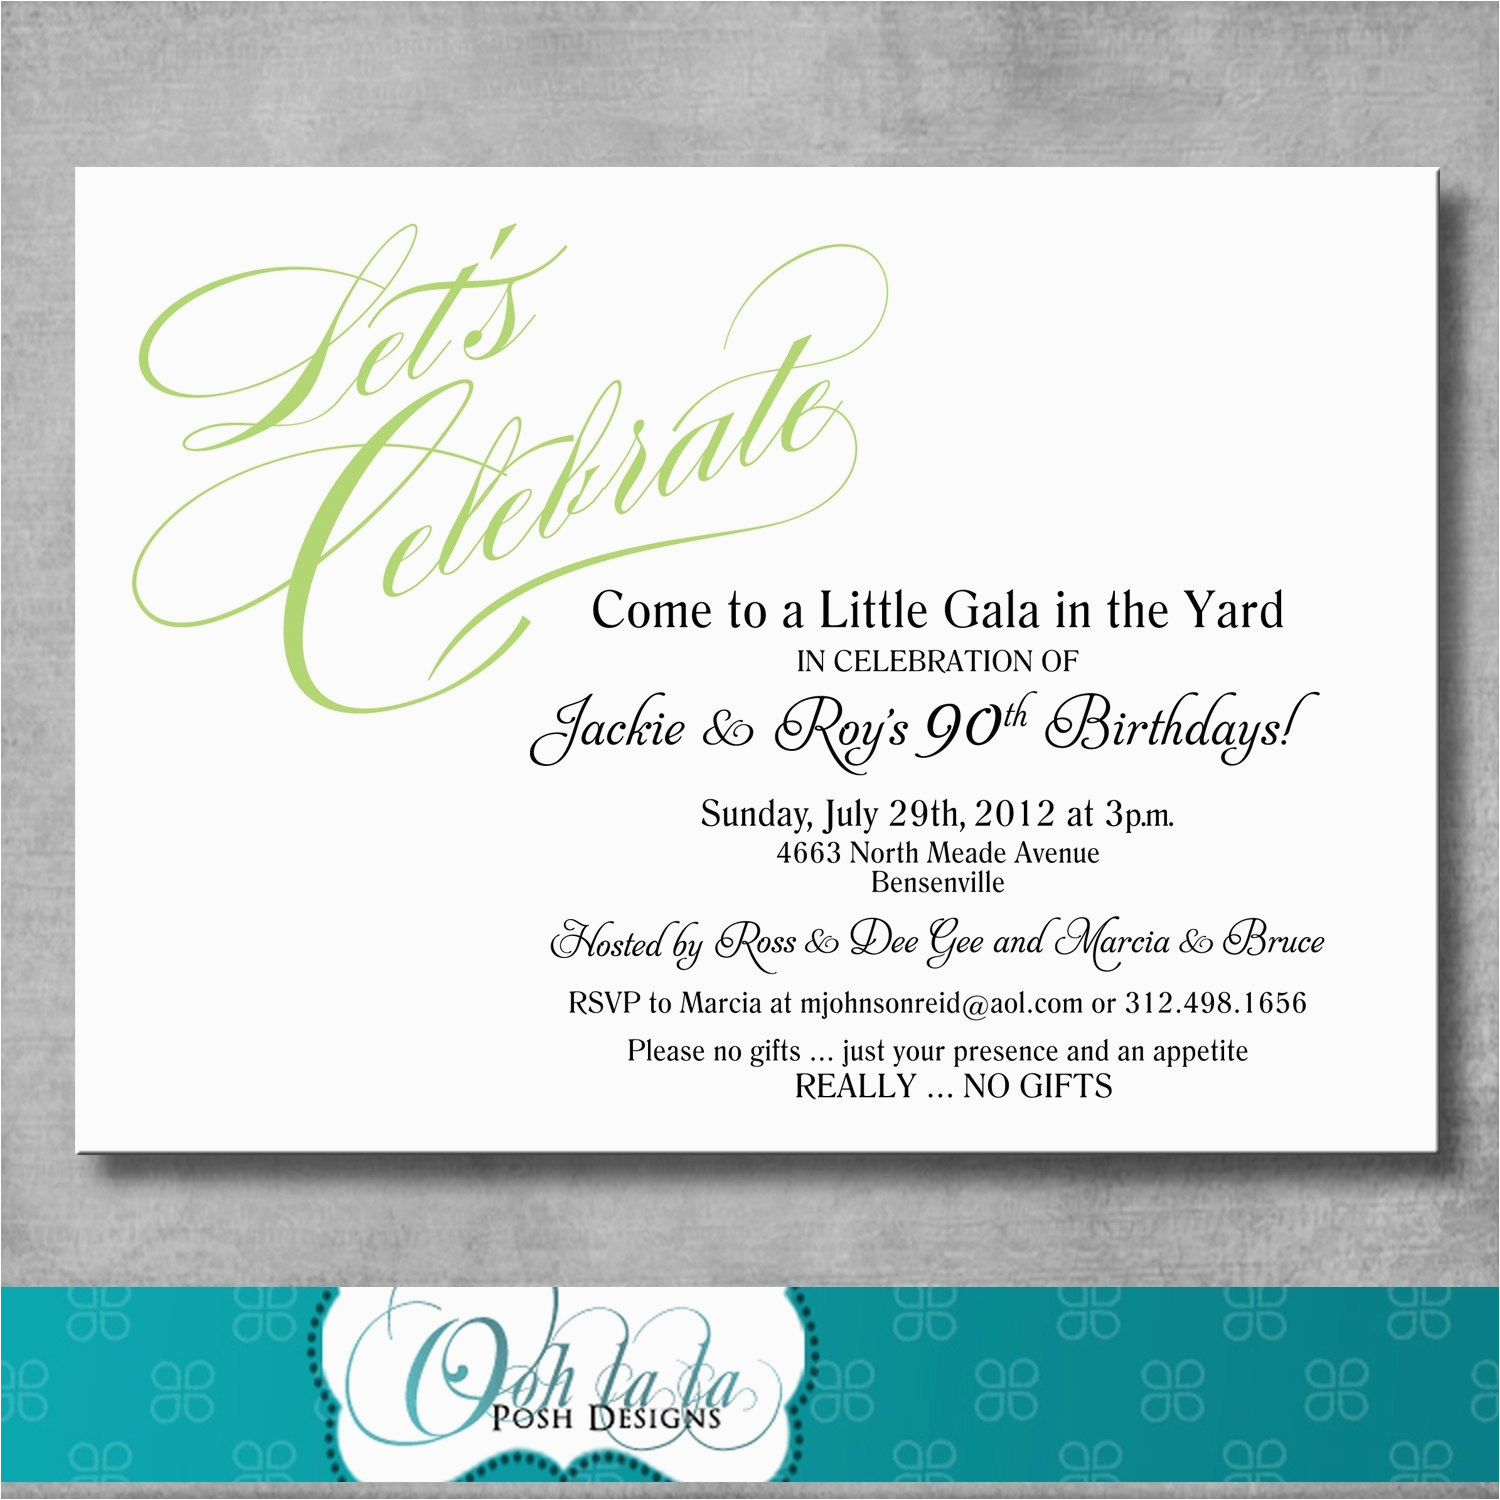 Birthday Party Invitation Message For Adults Birthdaybuzz Jpg 1500x1500 90th Invitations Wording